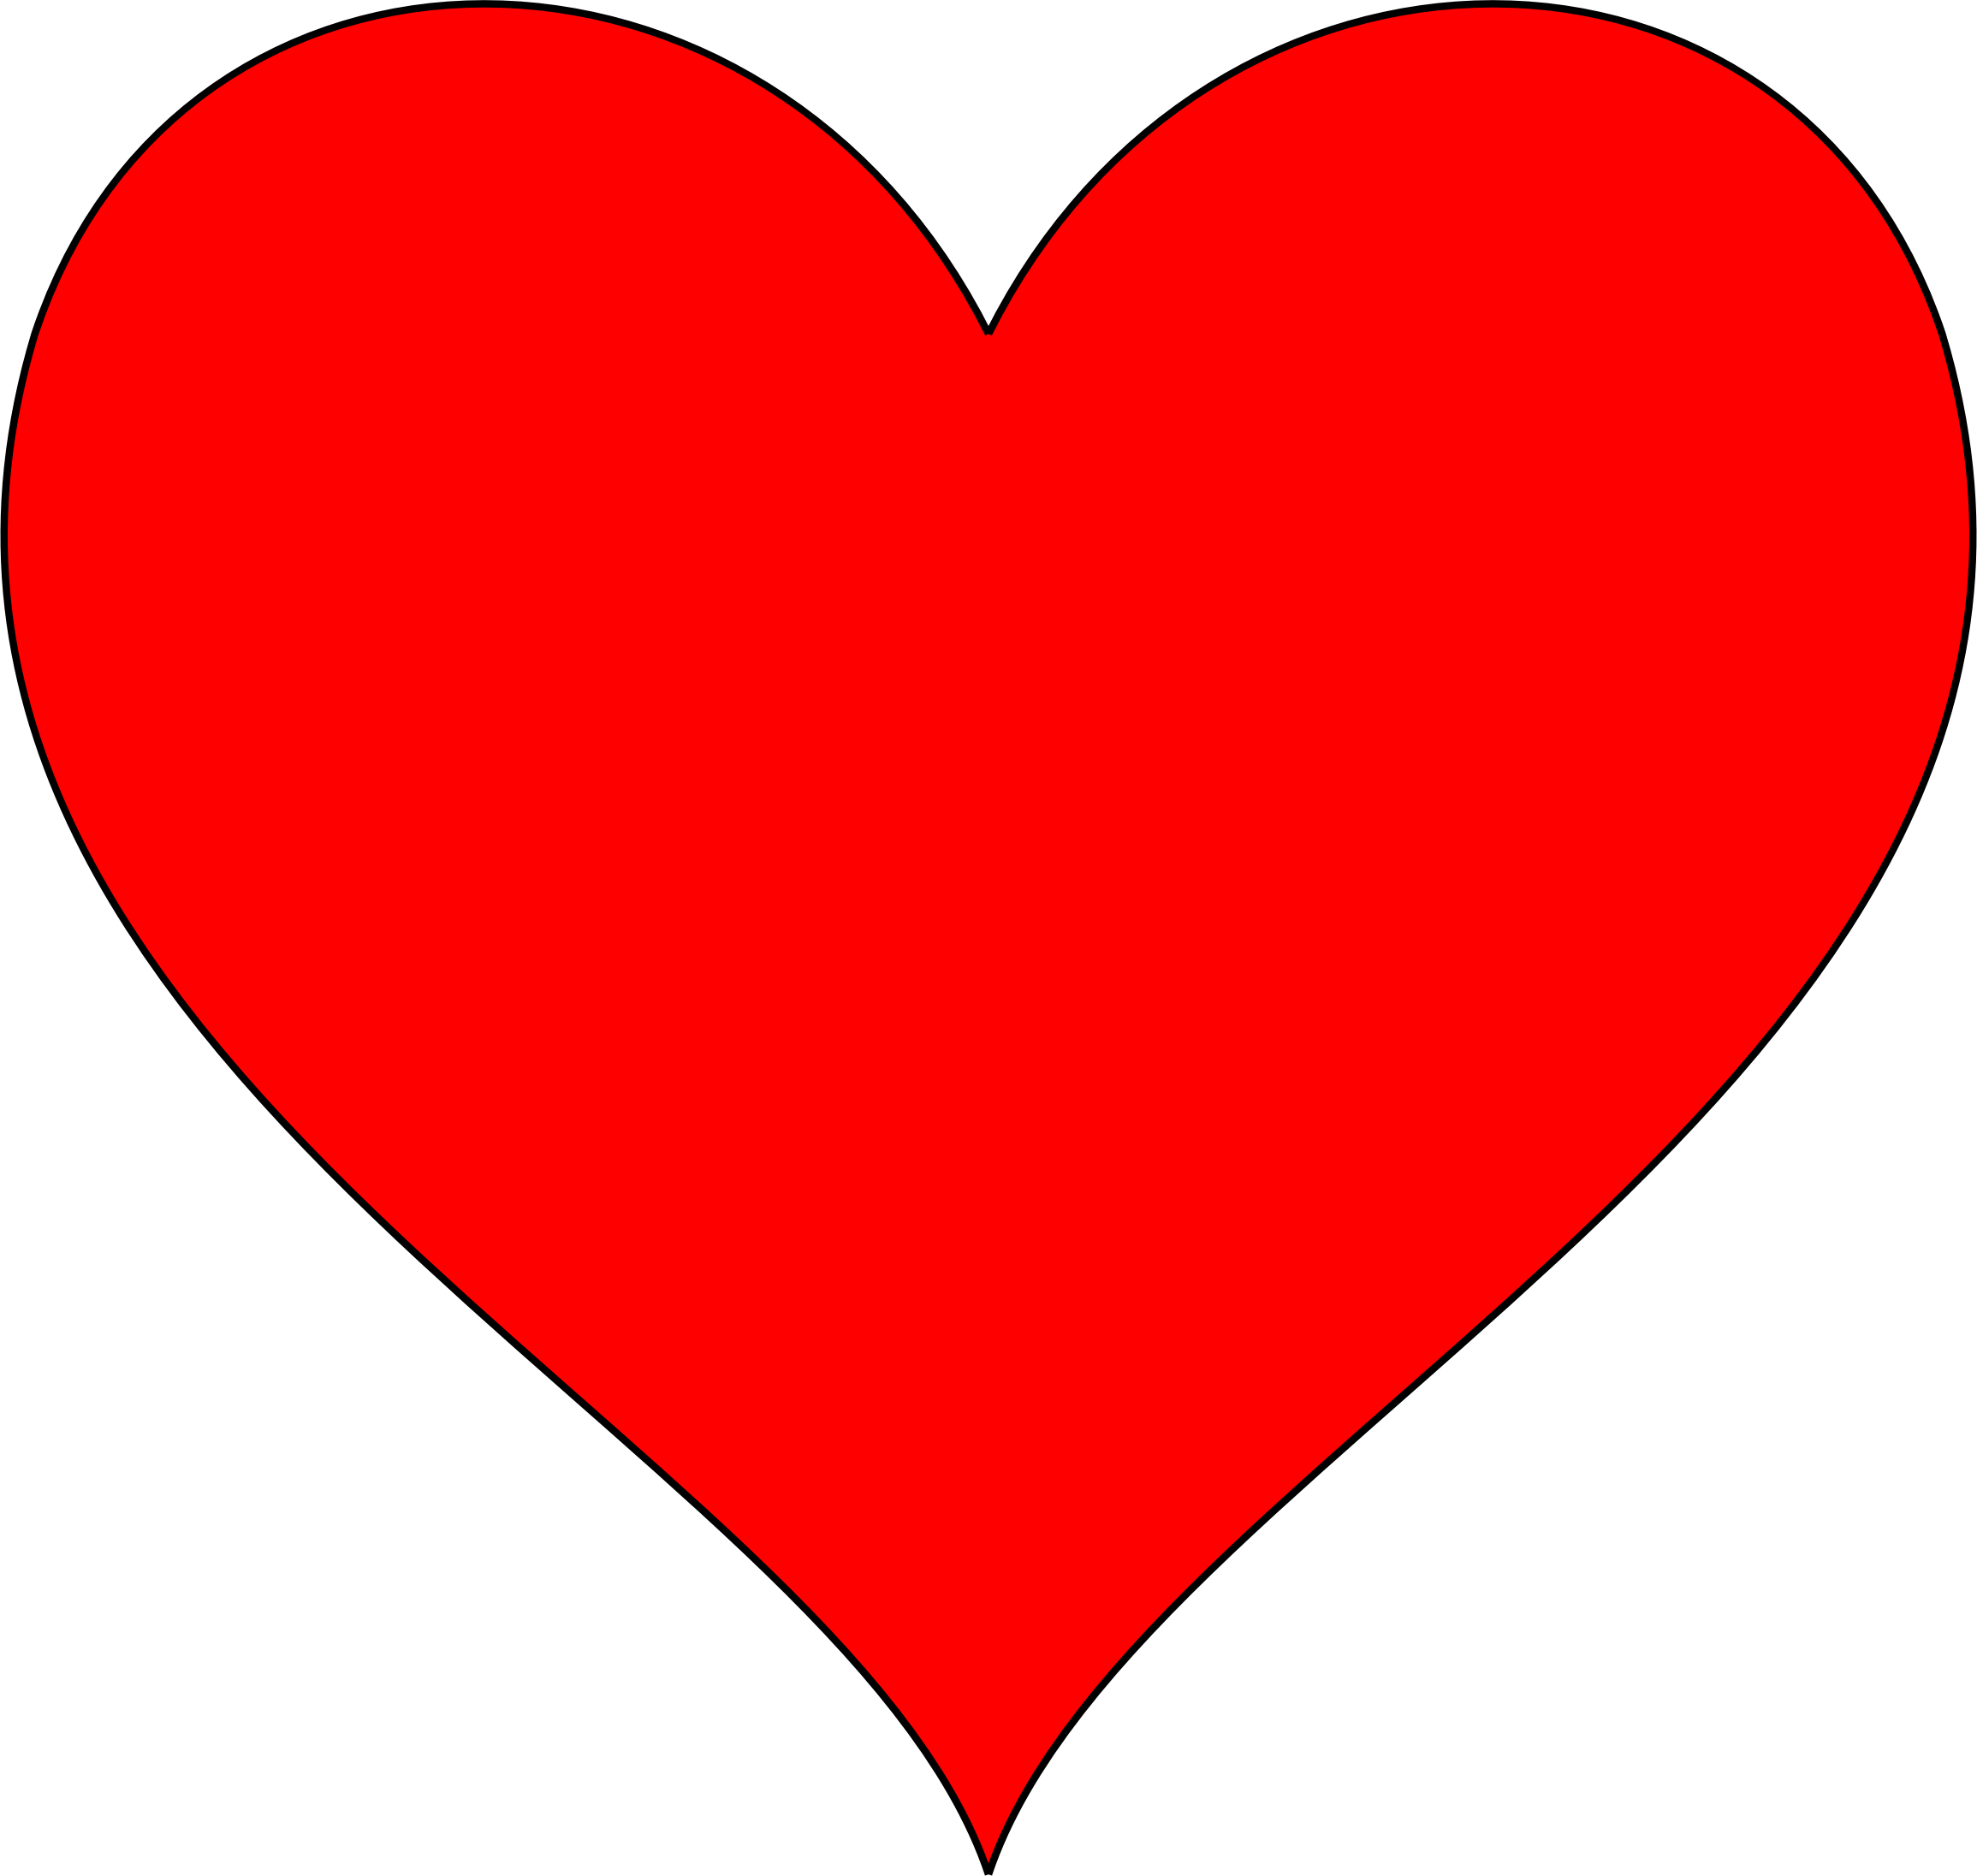 Heart symbol by jaynick an svg symbol definition that can be heart symbol by jaynick an svg symbol definition that can be inserted into an biocorpaavc Image collections